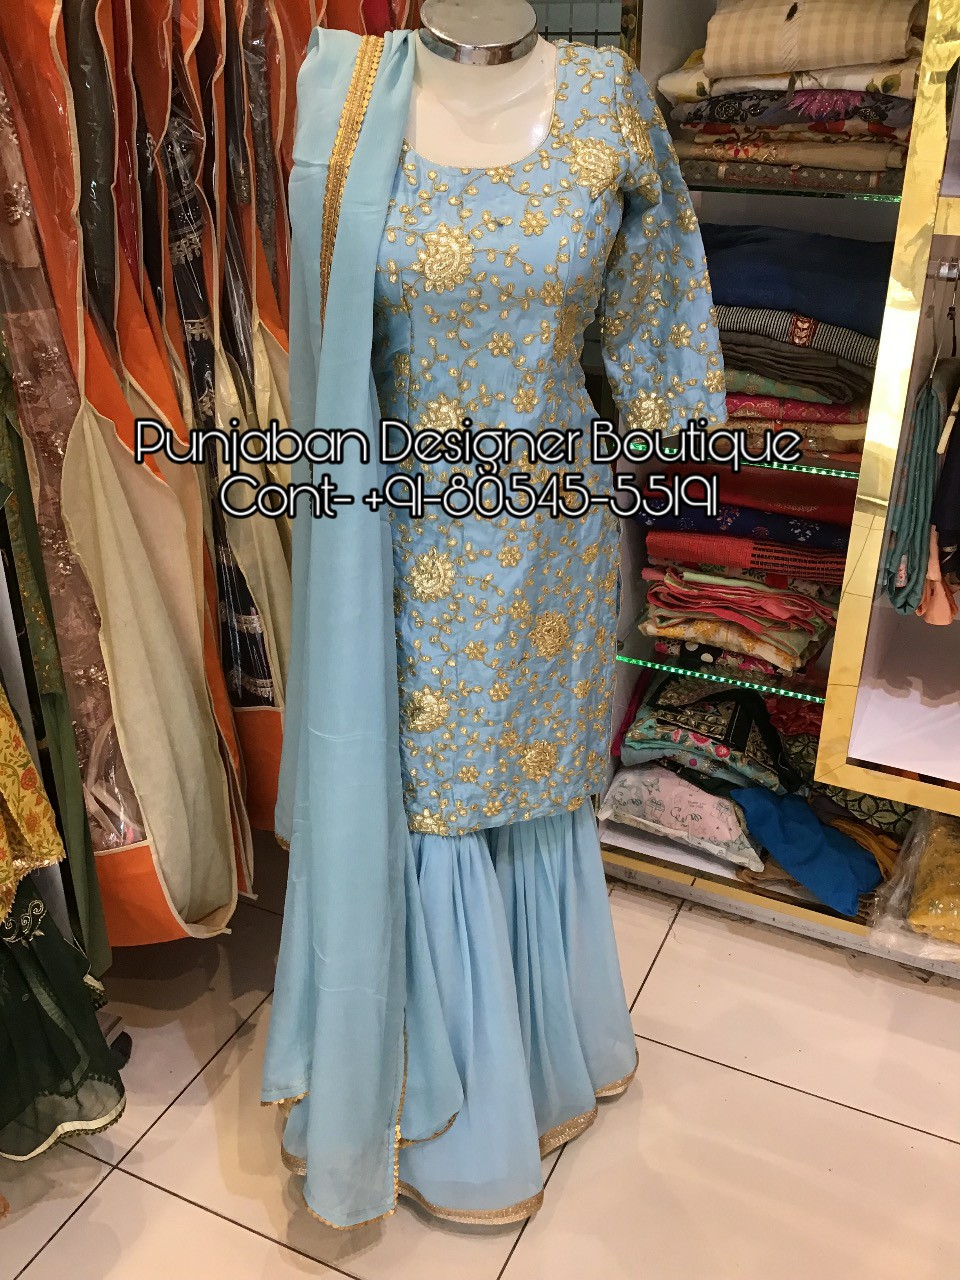 Punjabi Suits Party Wear Images Punjaban Designer Boutique